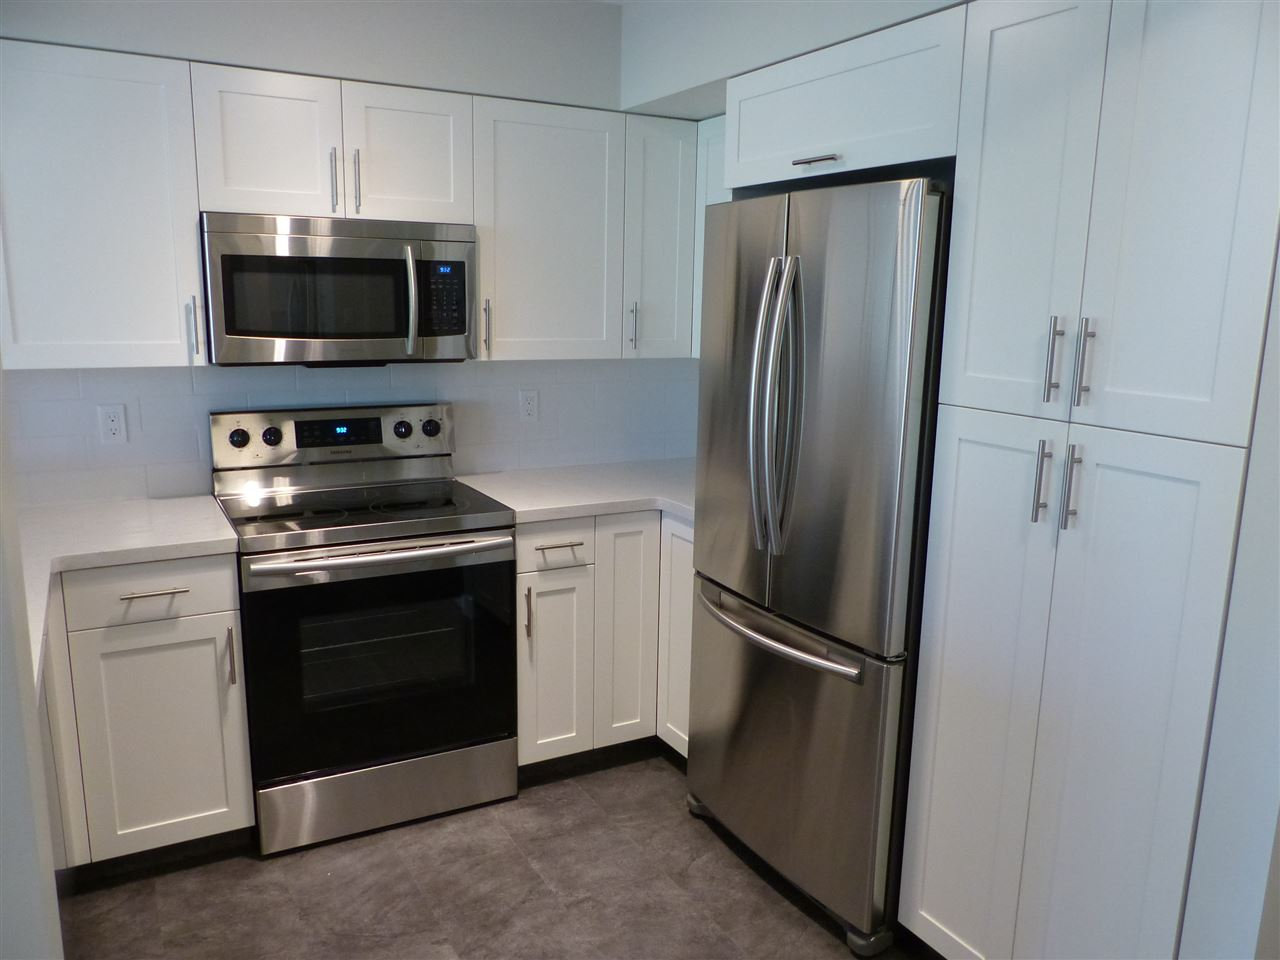 All NEW Kitchen, NEW Samsung Stove, Dishwasher, Microwave, Fridge c/w Ice Maker